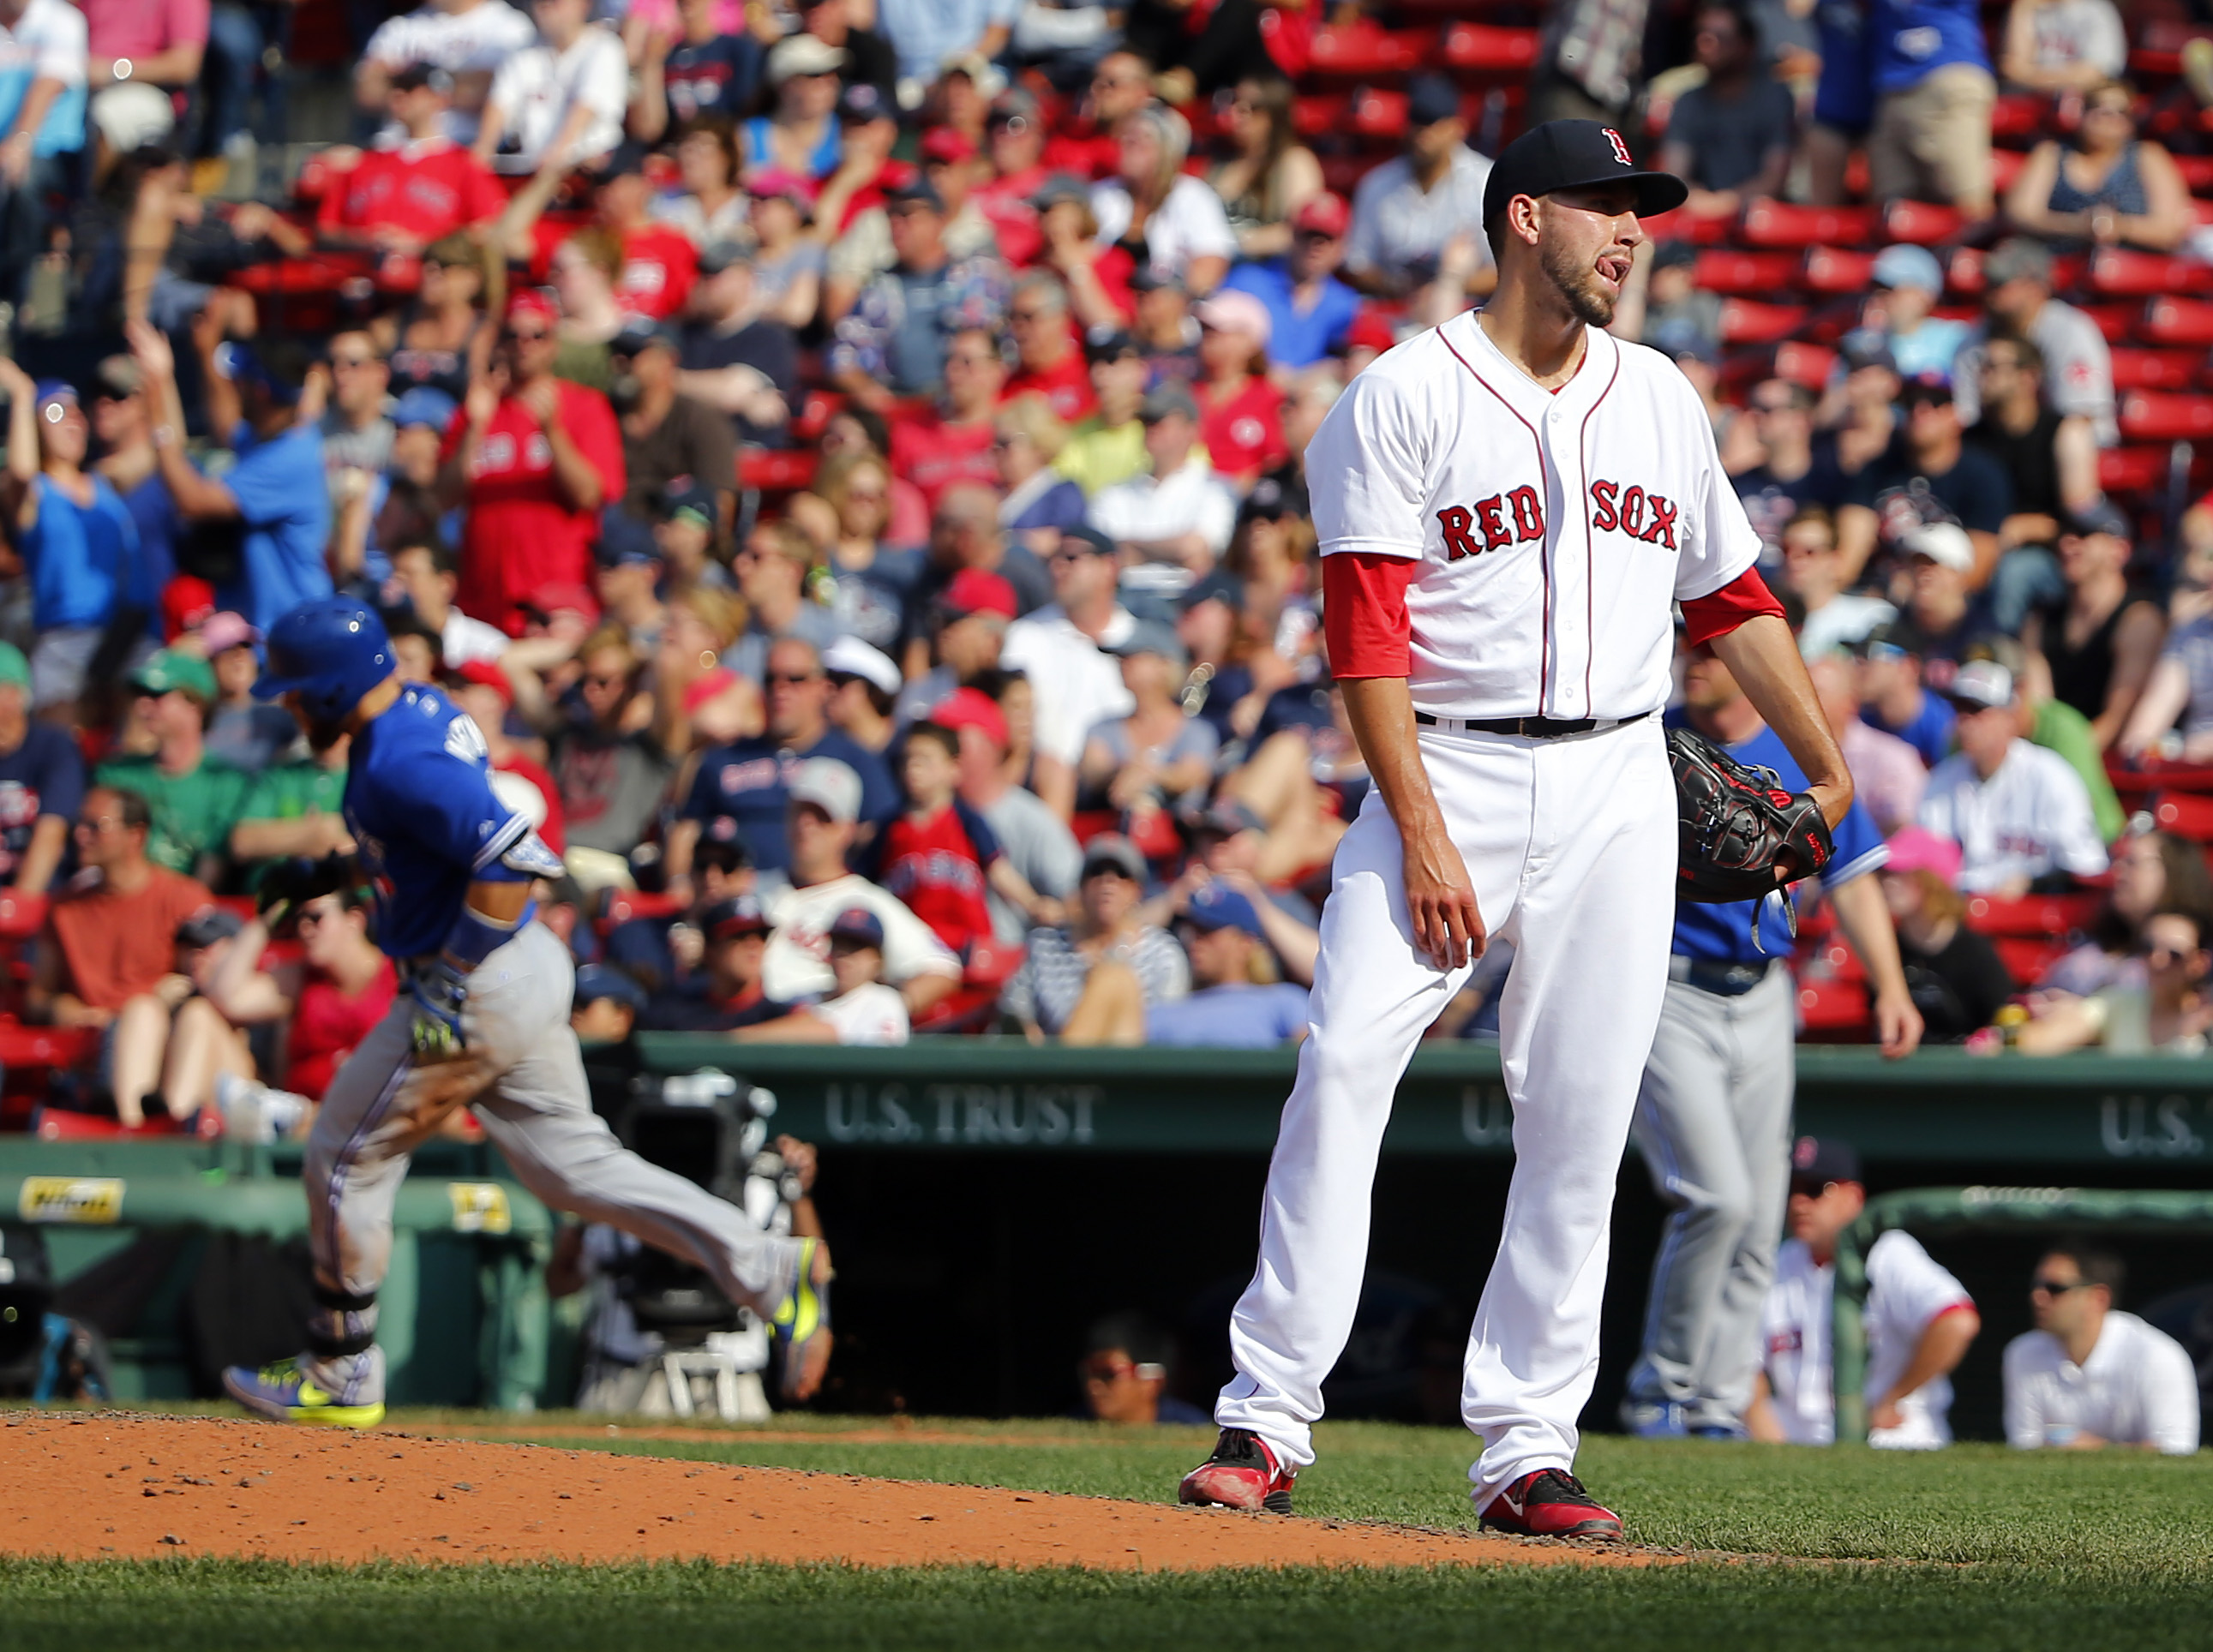 Boston Red Sox relief pitcher Matt Barnes stands on the mound after giving up the winning home run to Toronto Blue Jays' Russell Martin, left, during the 11th inning of Toronto's 5-4 win in a baseball game at Fenway Park in Boston Saturday, June 13, 2015.